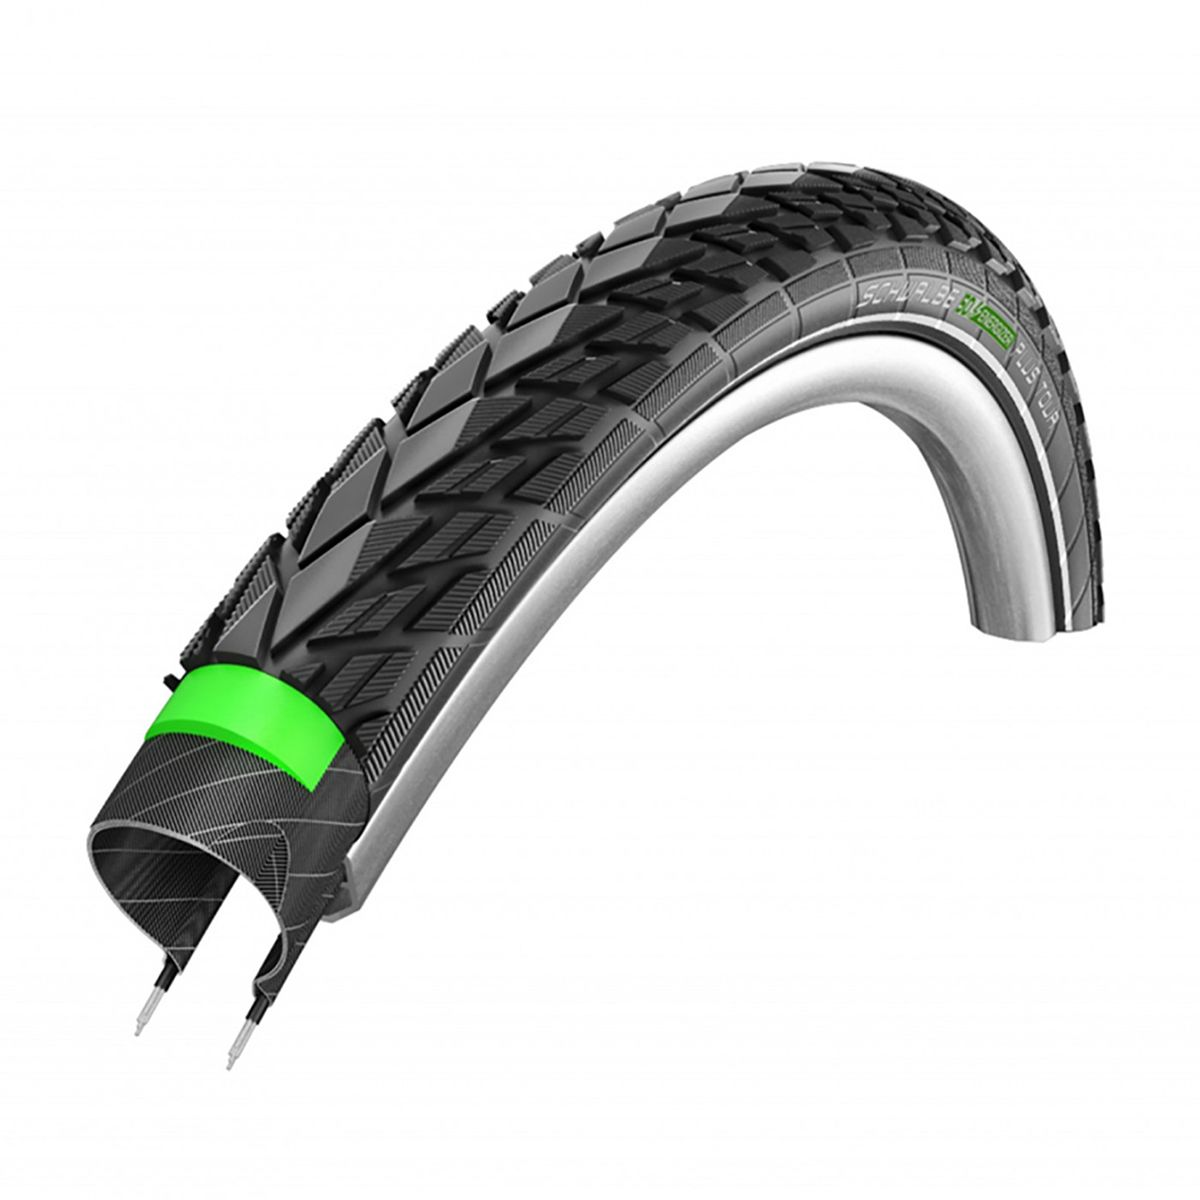 ENERGIZER PLUS TOUR Performance Line clincher tyre